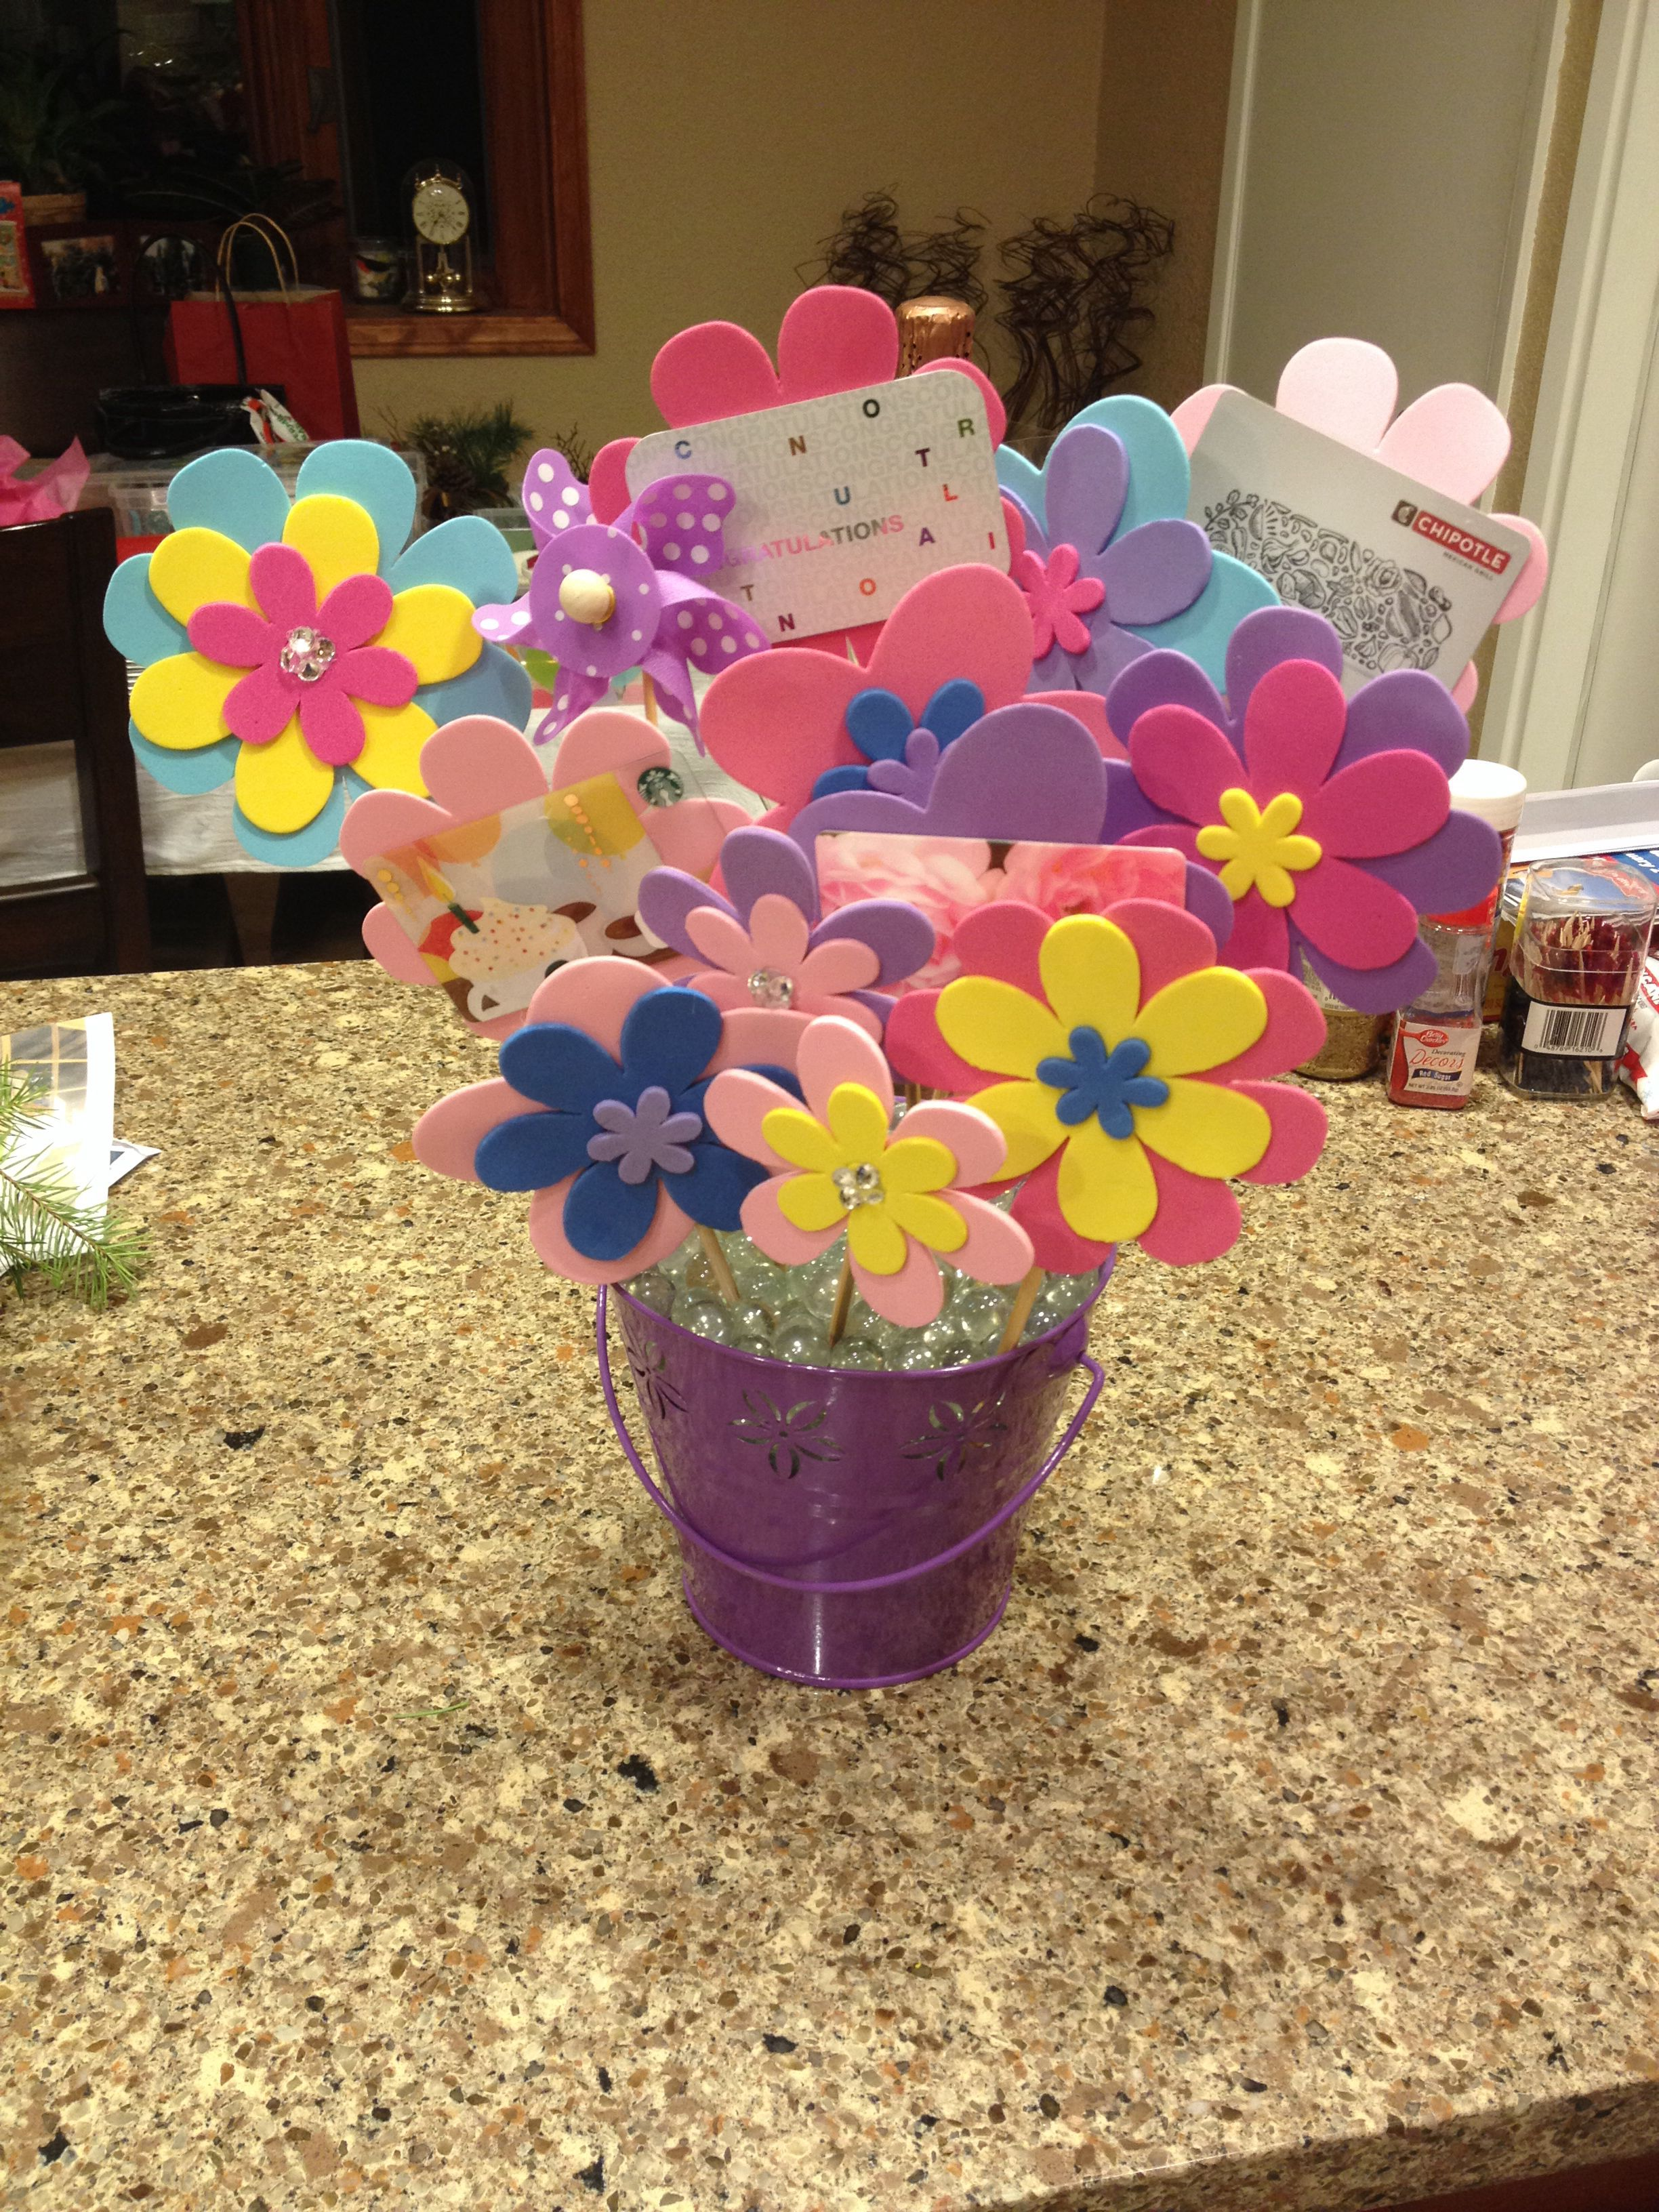 Gift card flower bouquet a friend made me for my